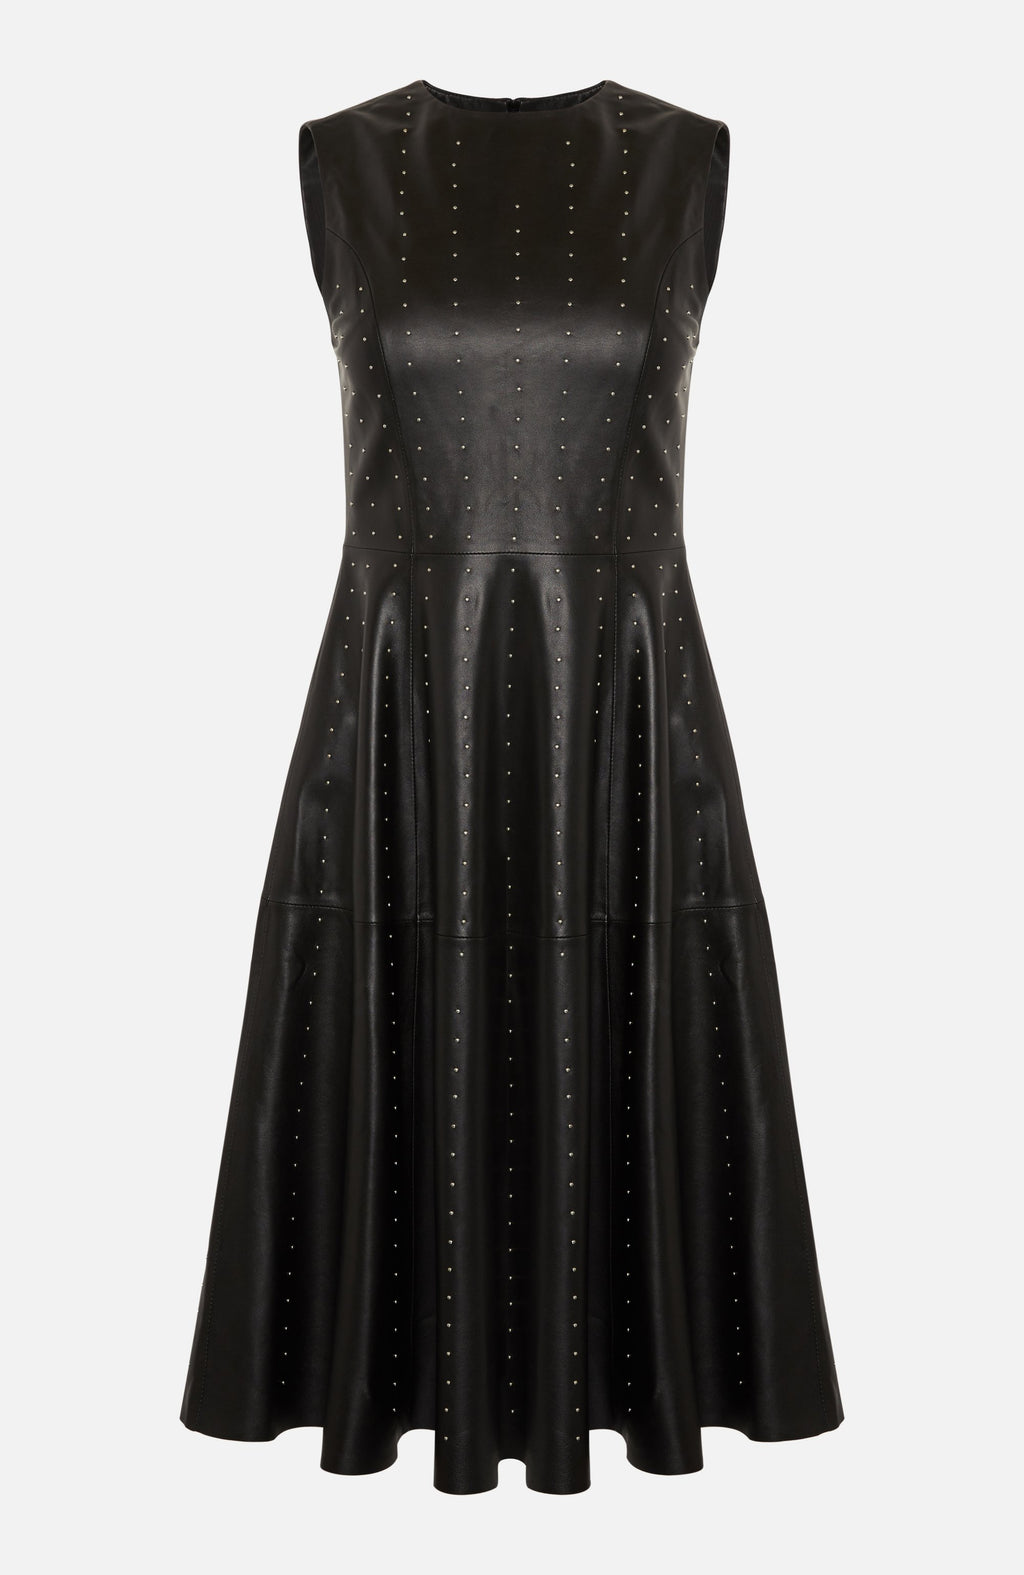 Lou Andrea Black Leather Stud Dress